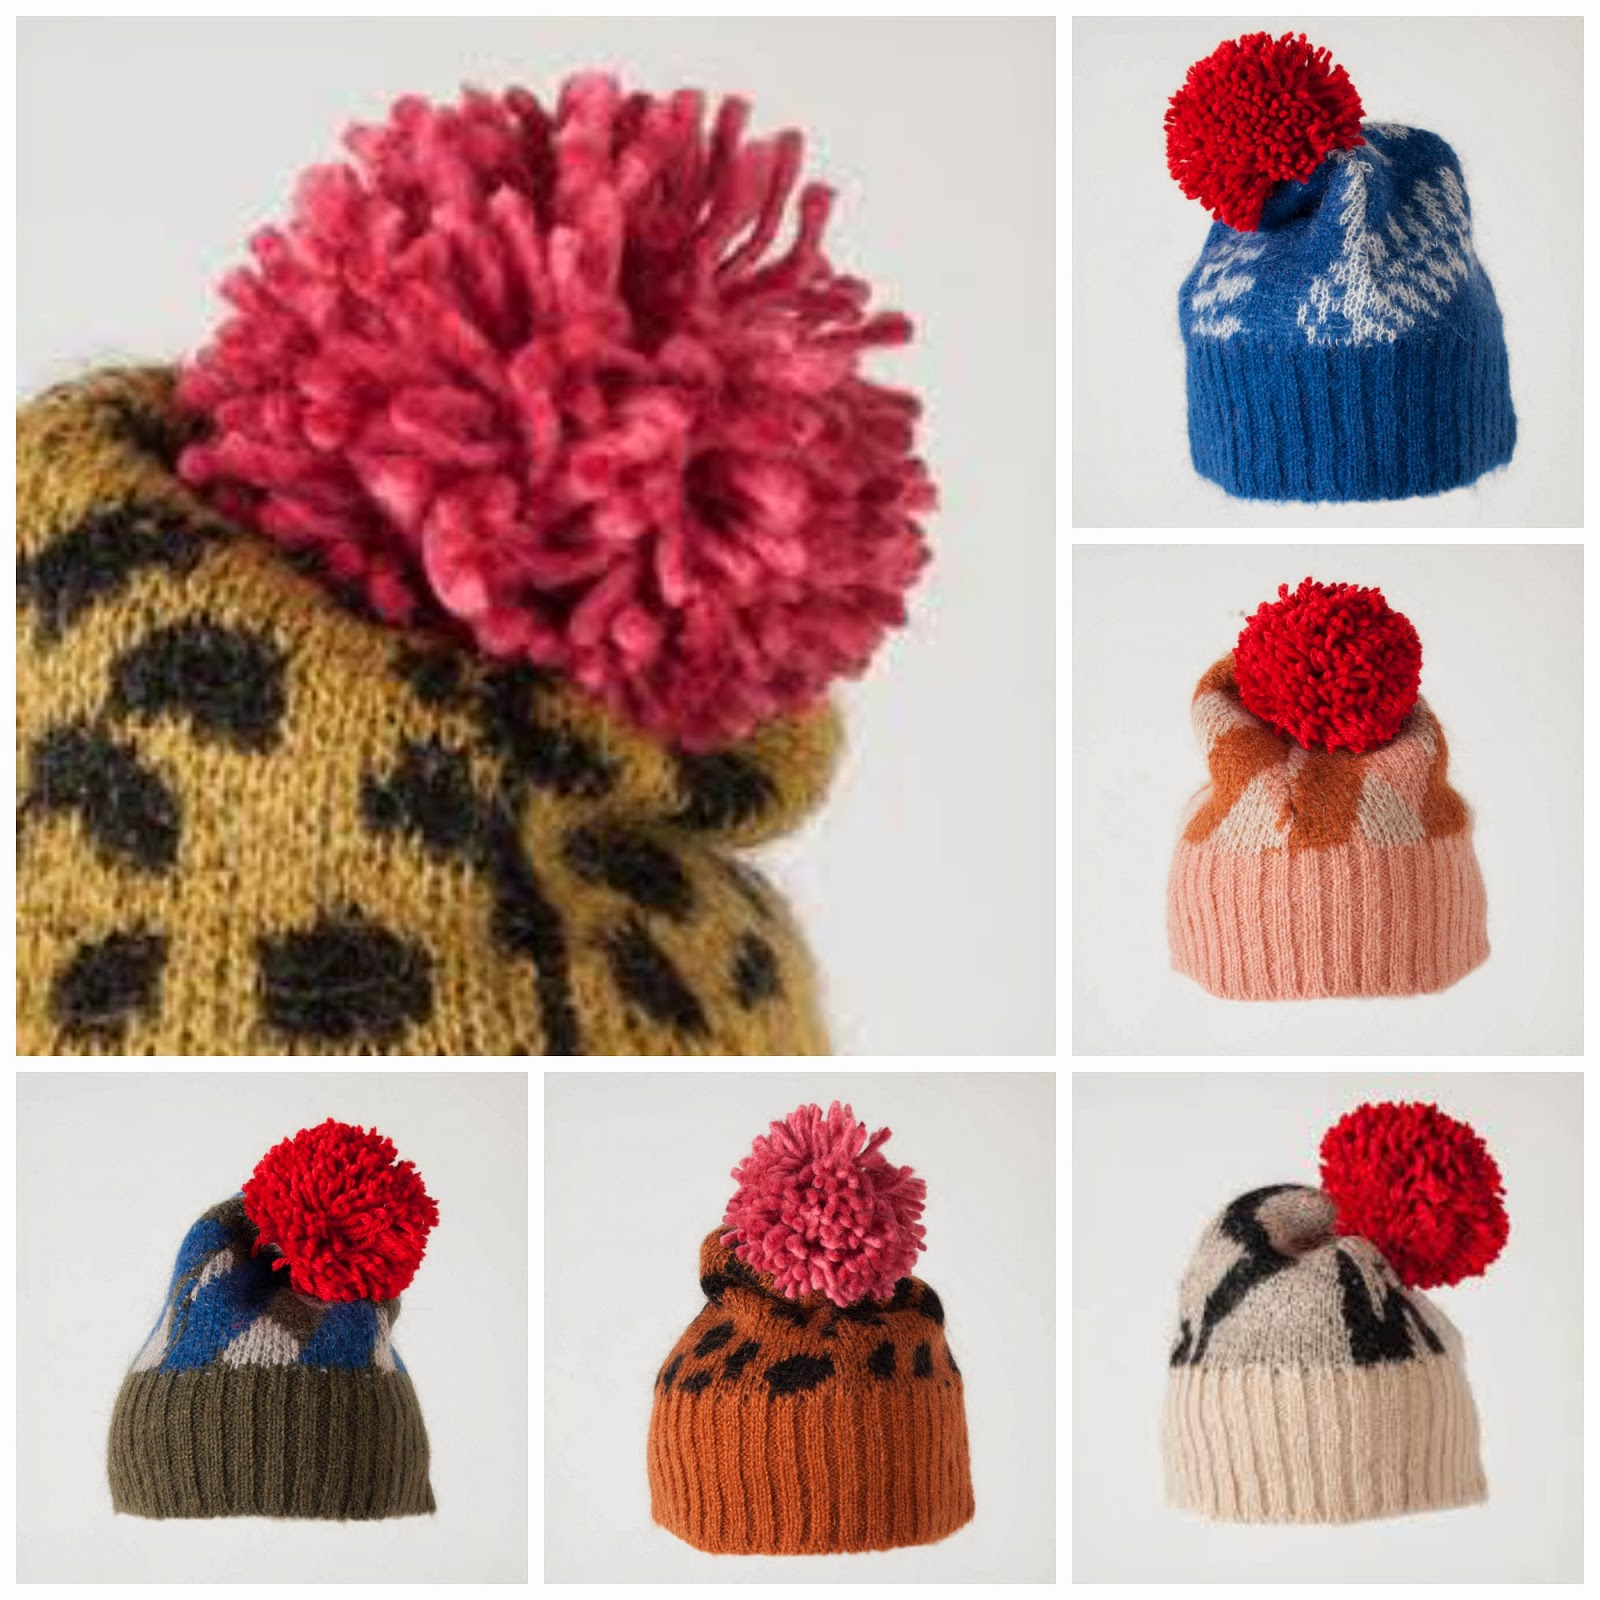 laureus knit hat, cross knit hat, diamonds knit hat, leopard knit hat, stars knit hat, bobo choses, bobo choses beanie, bobo choses beanies, bobo choses knit hat, bobo choses leopard hat, bobo choses diamond hat, bobo choses stars hat, bobo choses mohair, mohair, mohair beanie, kids beanies, barn mössa, mohair mössa